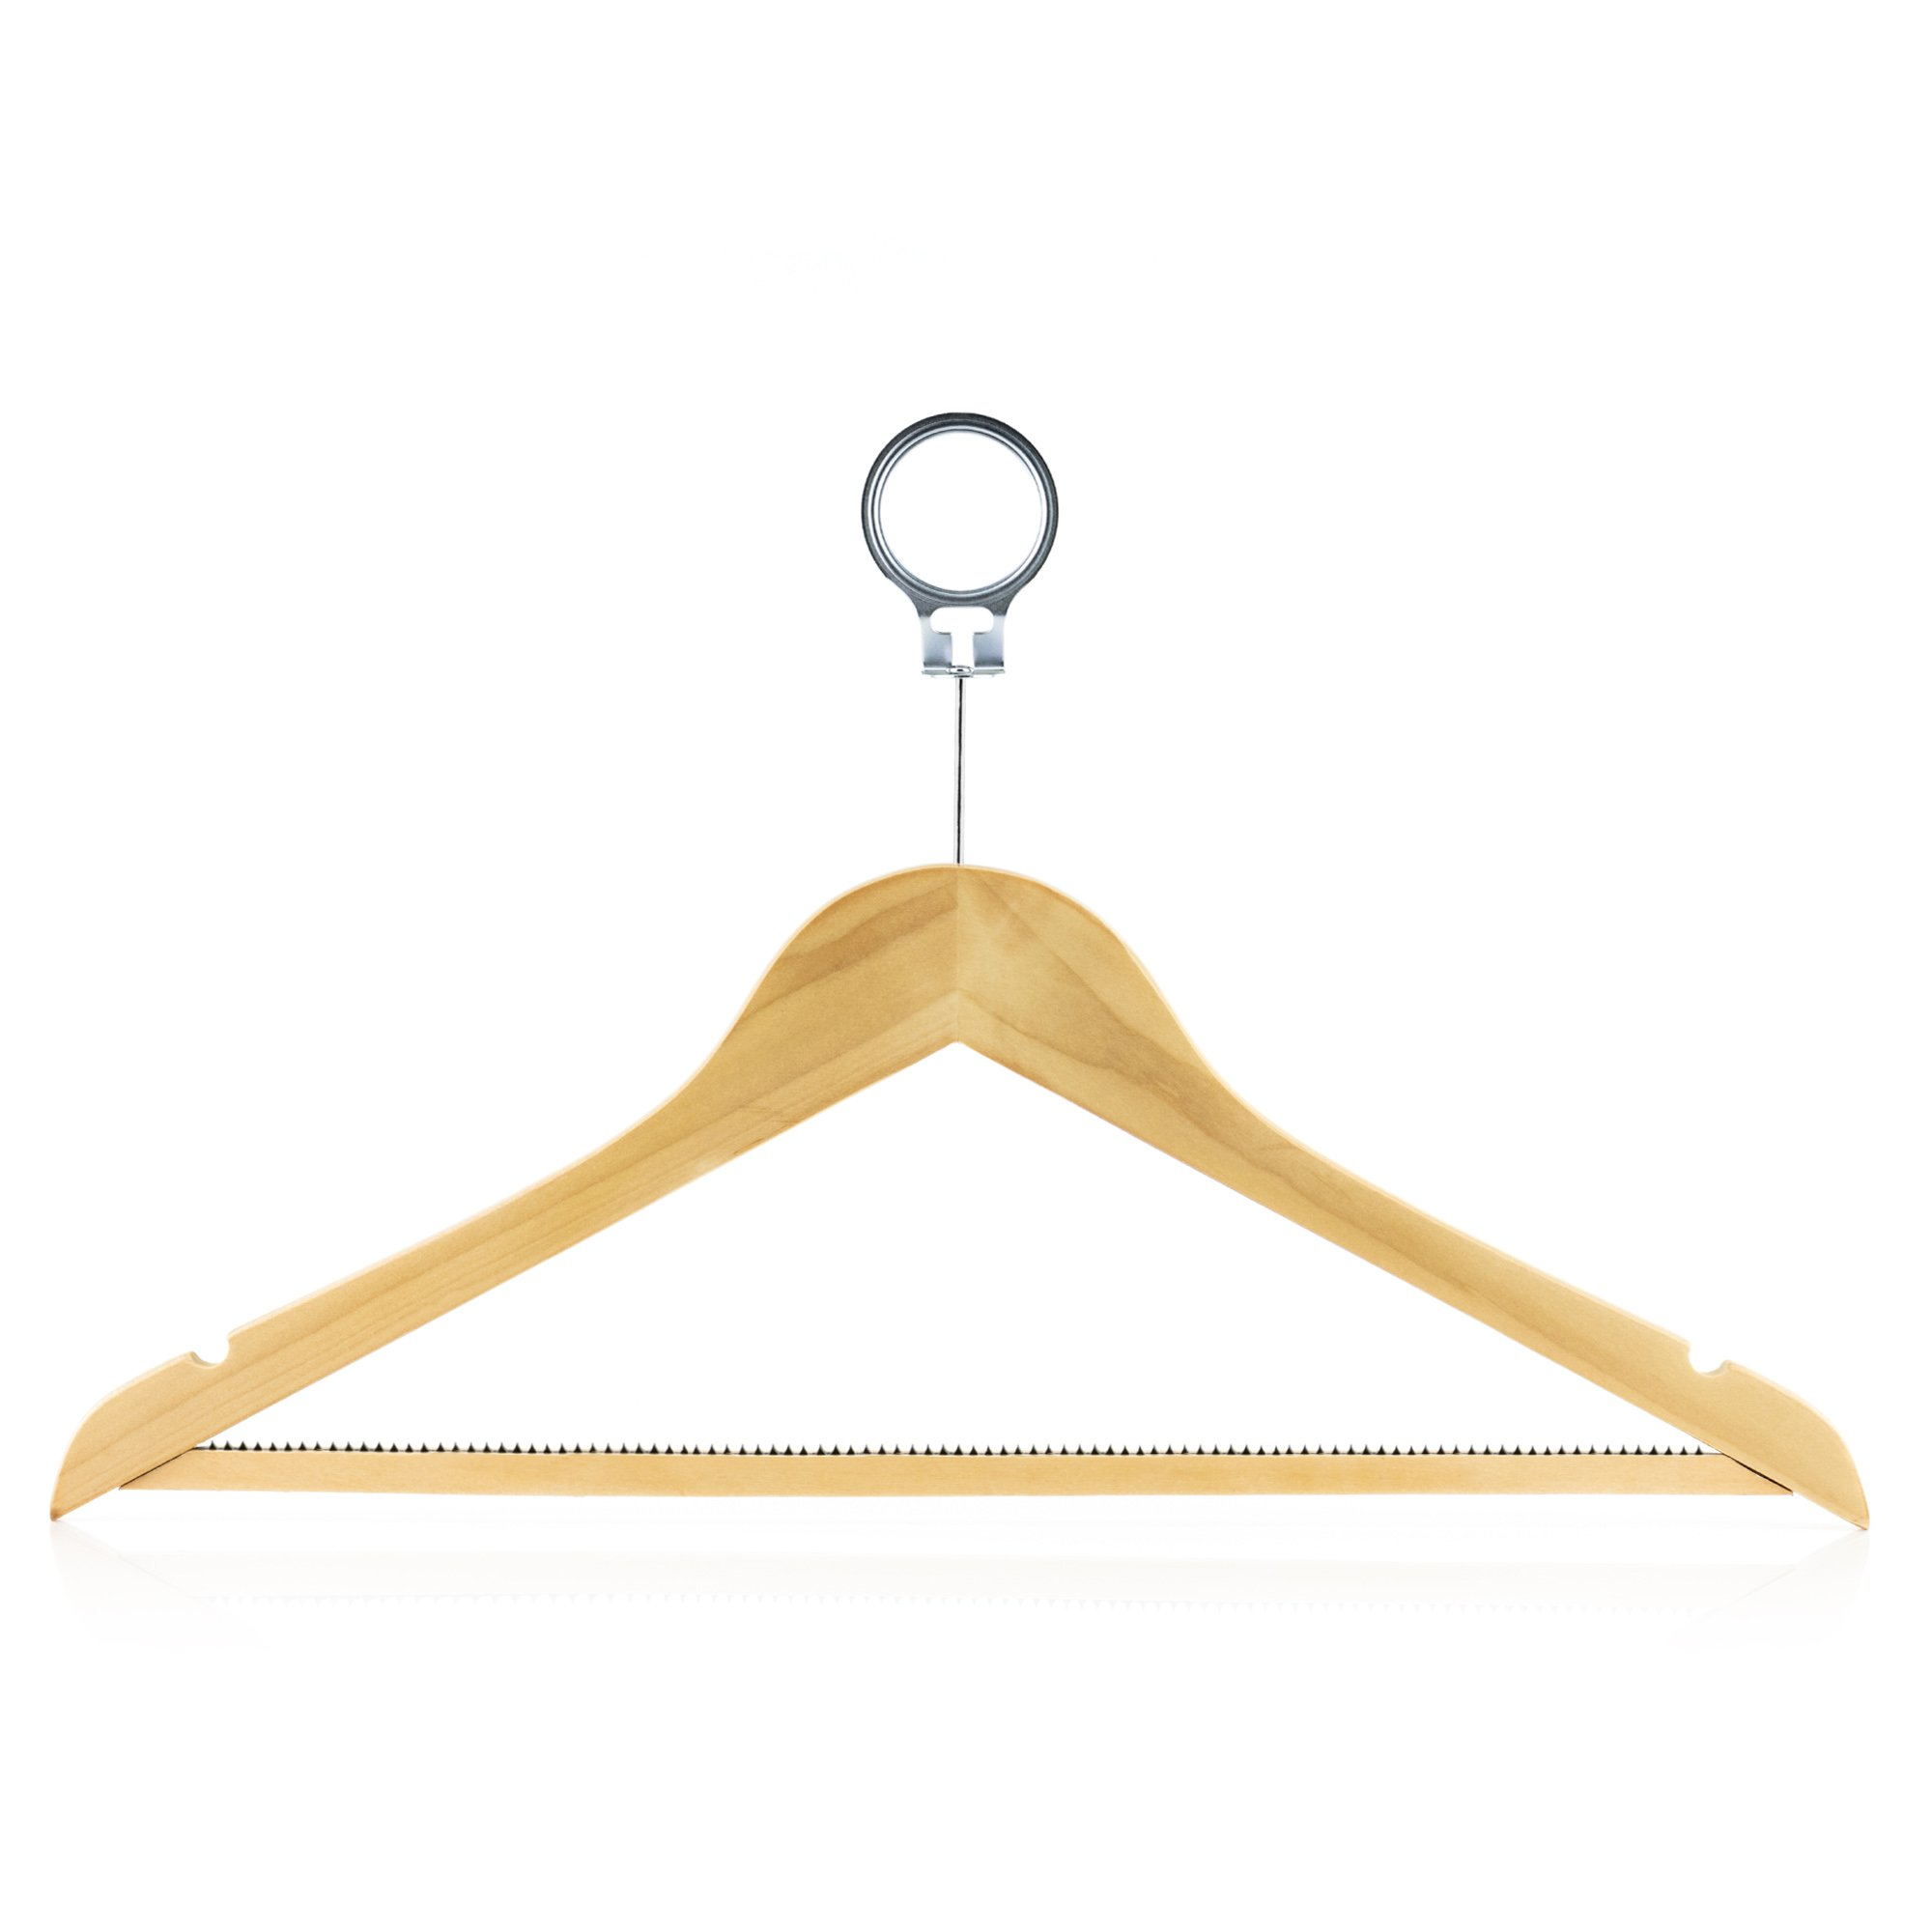 HANGERWORLD 18 Inch Wooden Hotel Clothes Hangers with Non Slip Pants/Skirt Bar & Metal Security Ring, Pack of 10